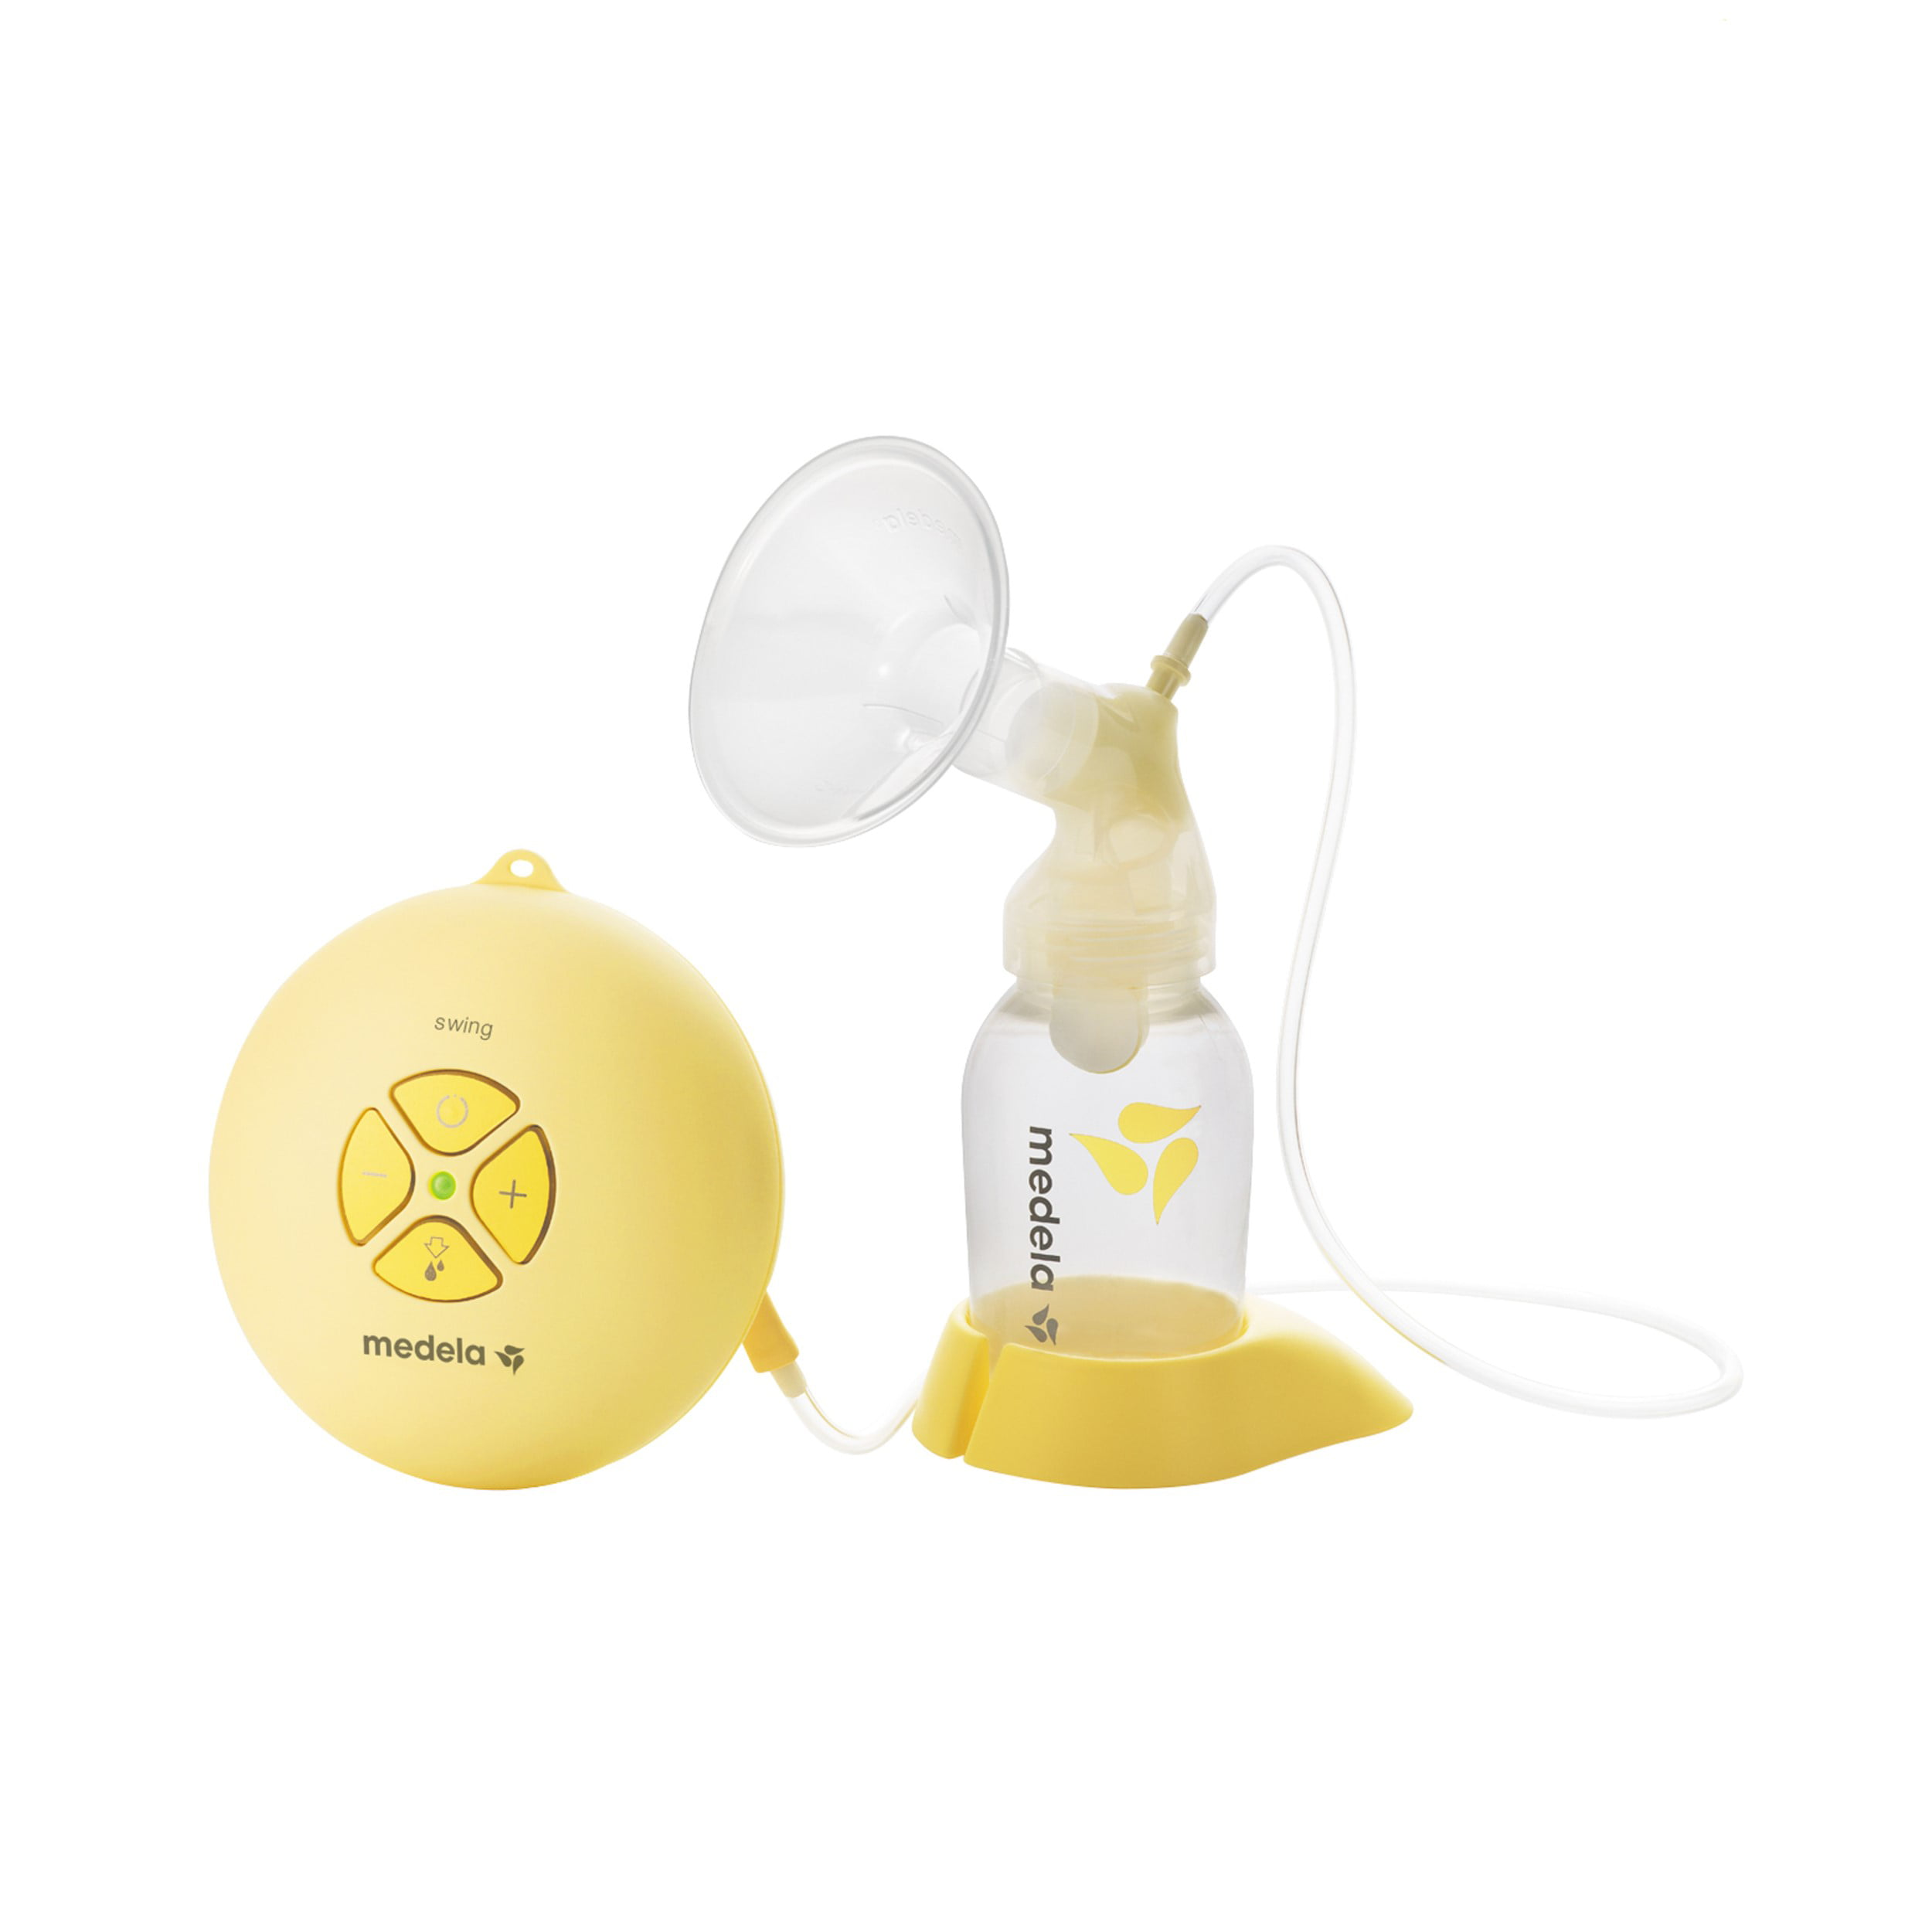 medela maxi swing double breast pump